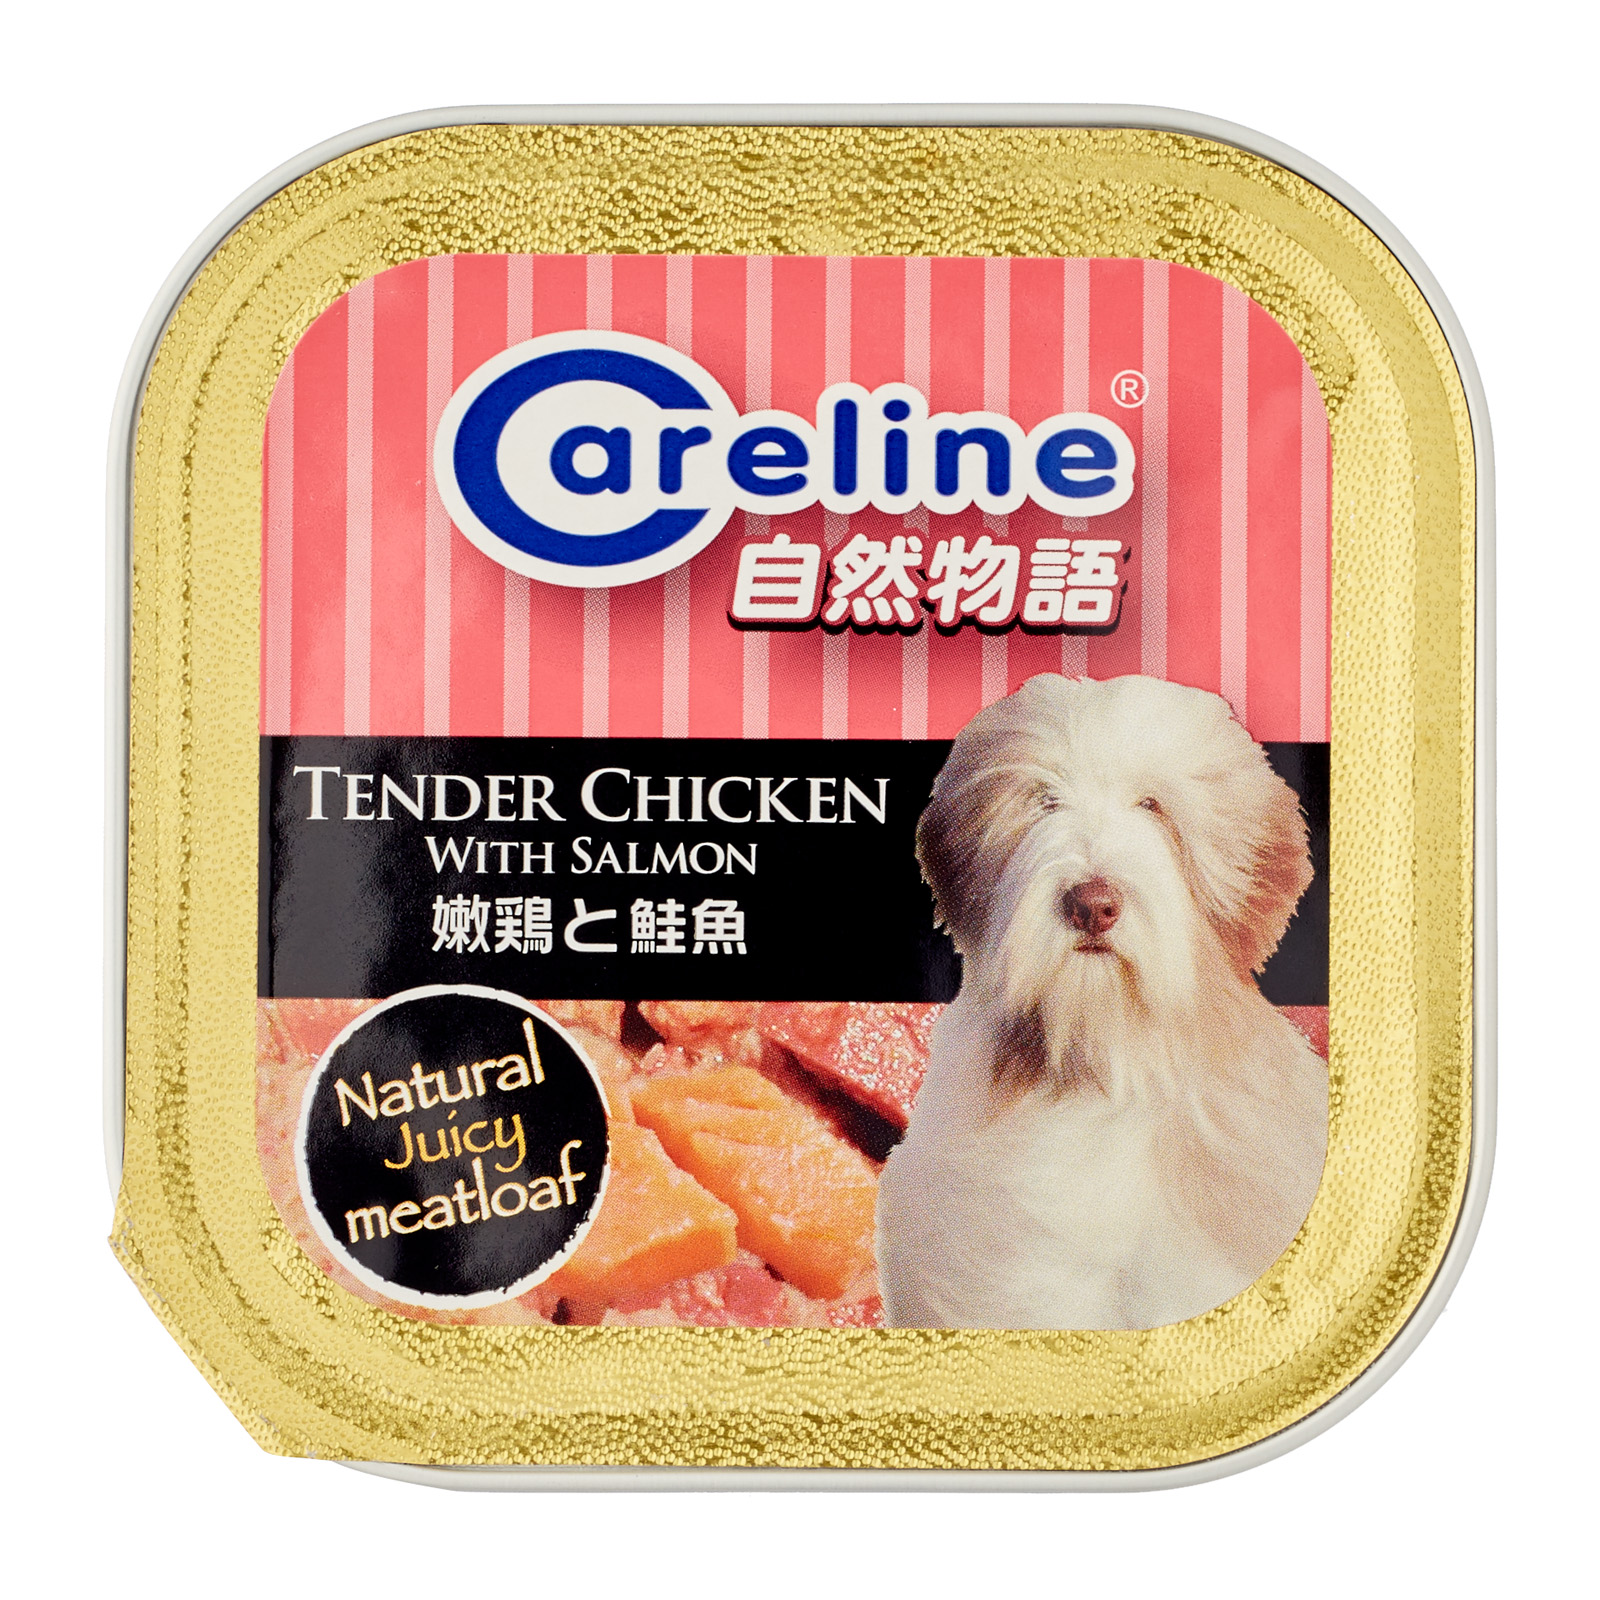 Careline Tender Chicken with Salmon 80g